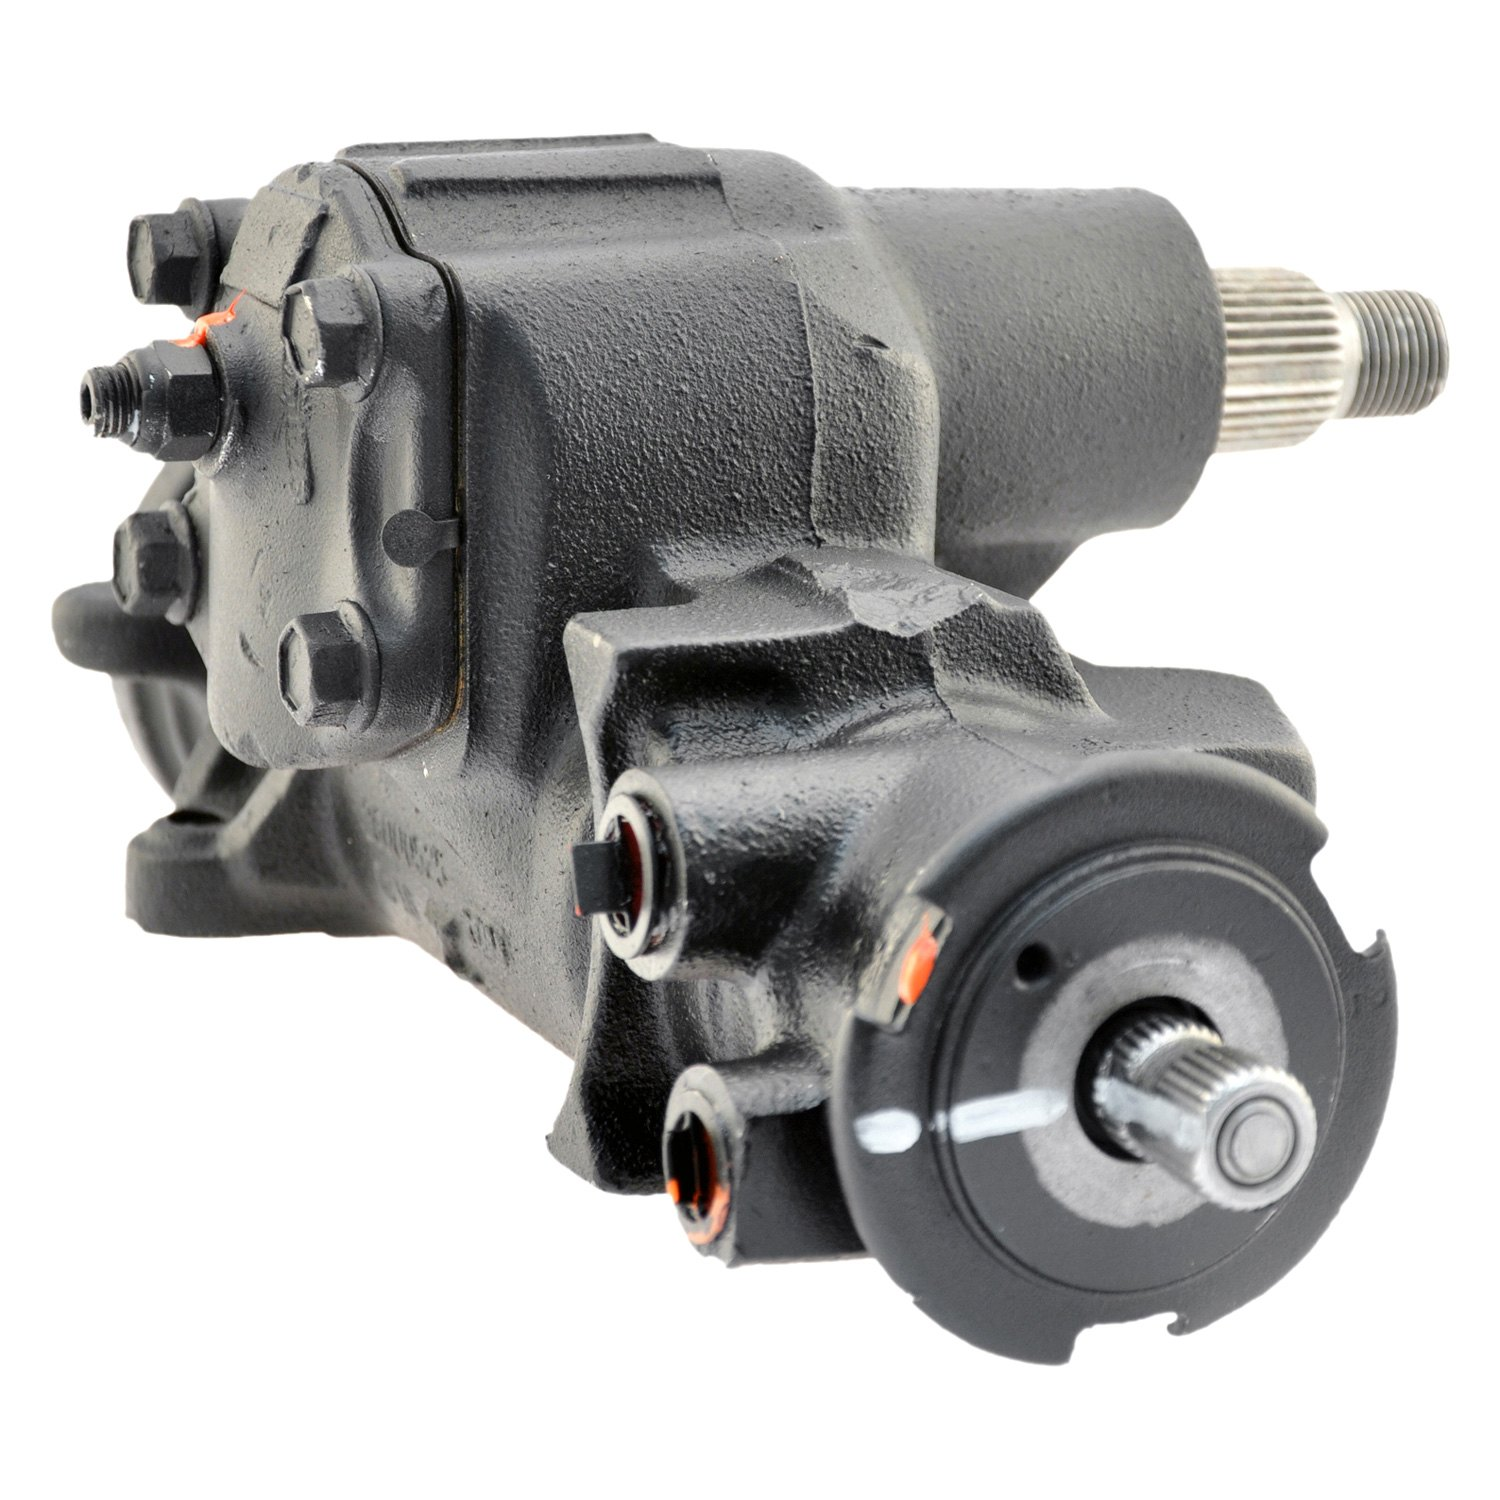 Chevy S 10 Pickup Gas 2000 Remanufactured: Chevy S-10 Pickup 1997-2000 Professional